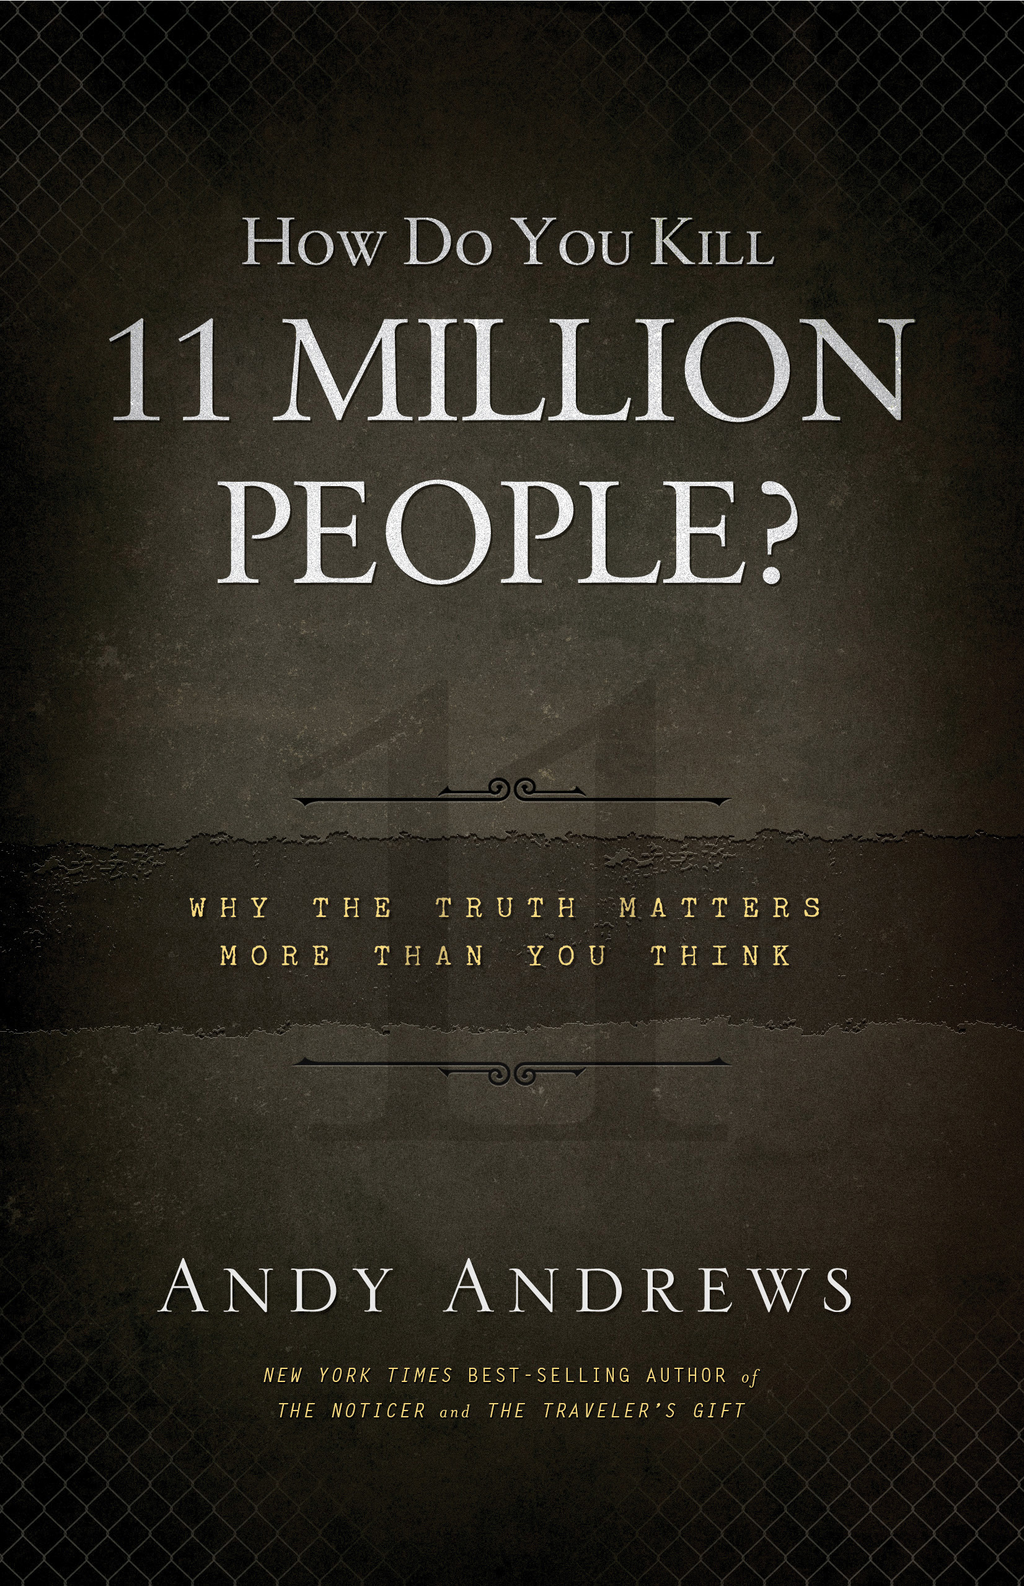 How Do You Kill 11 Million People?: Why the Truth Matters More Than You Think By: Andy Andrews